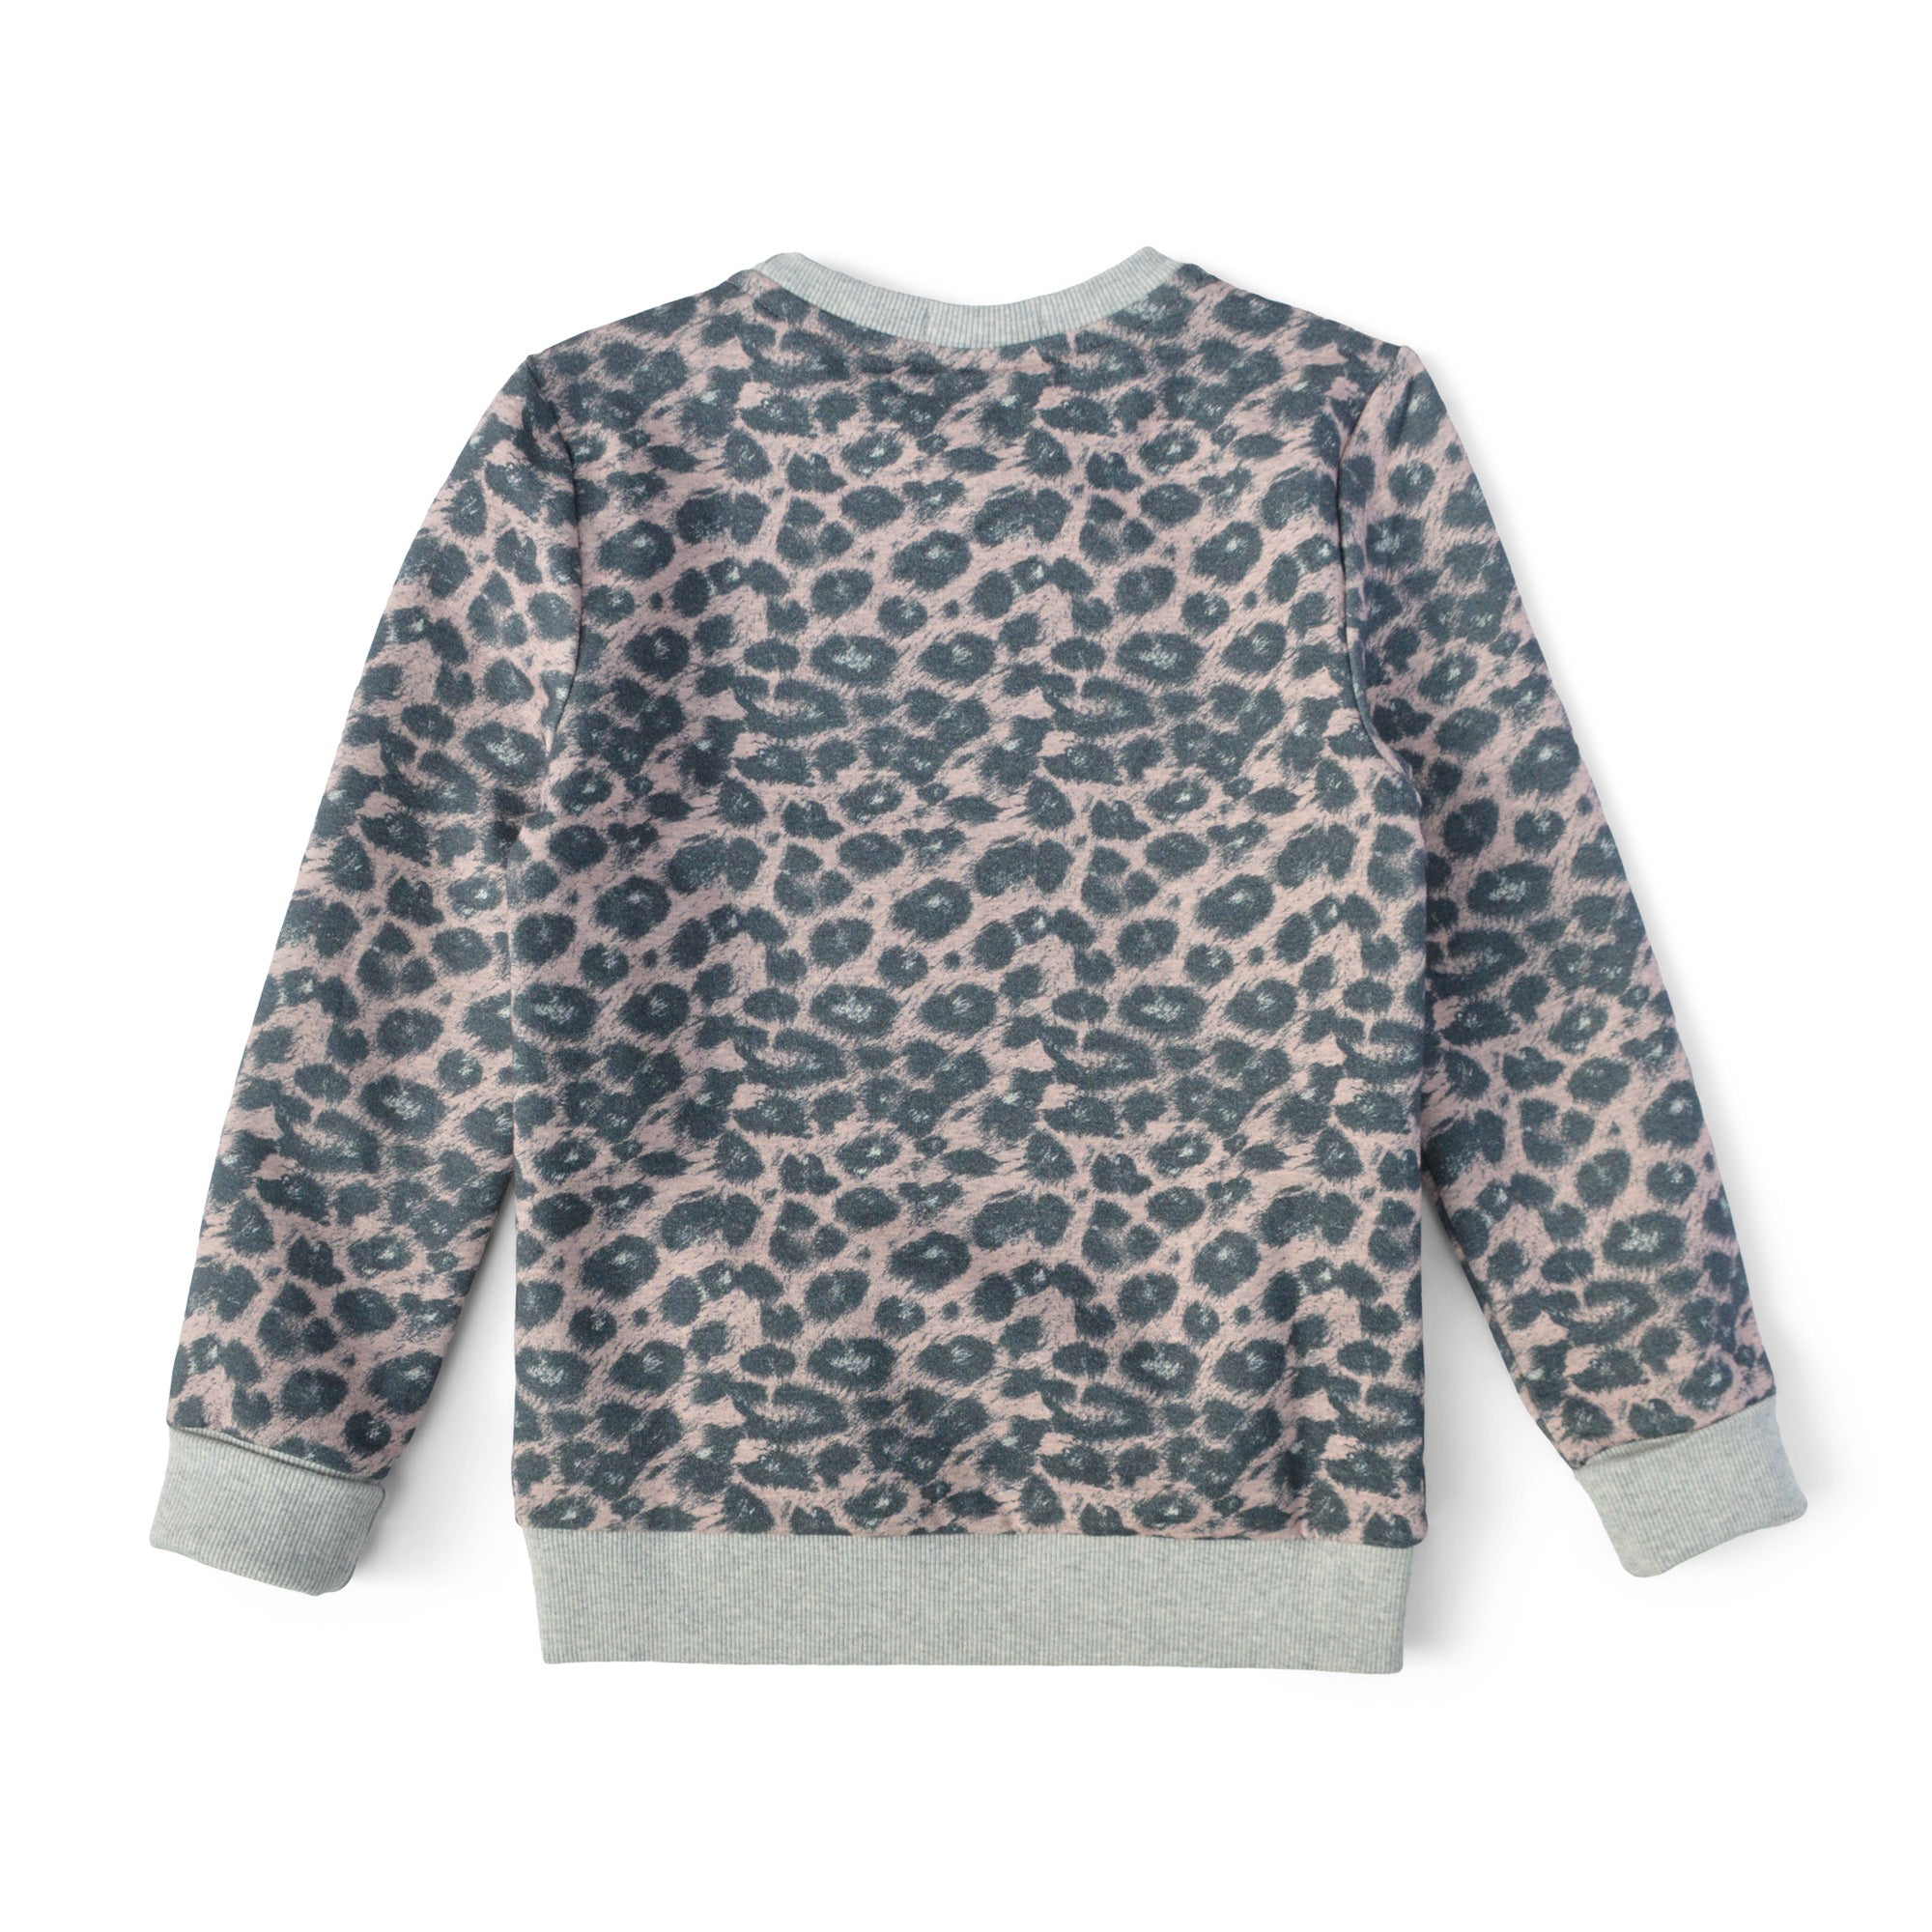 BOLLY sweatshirt